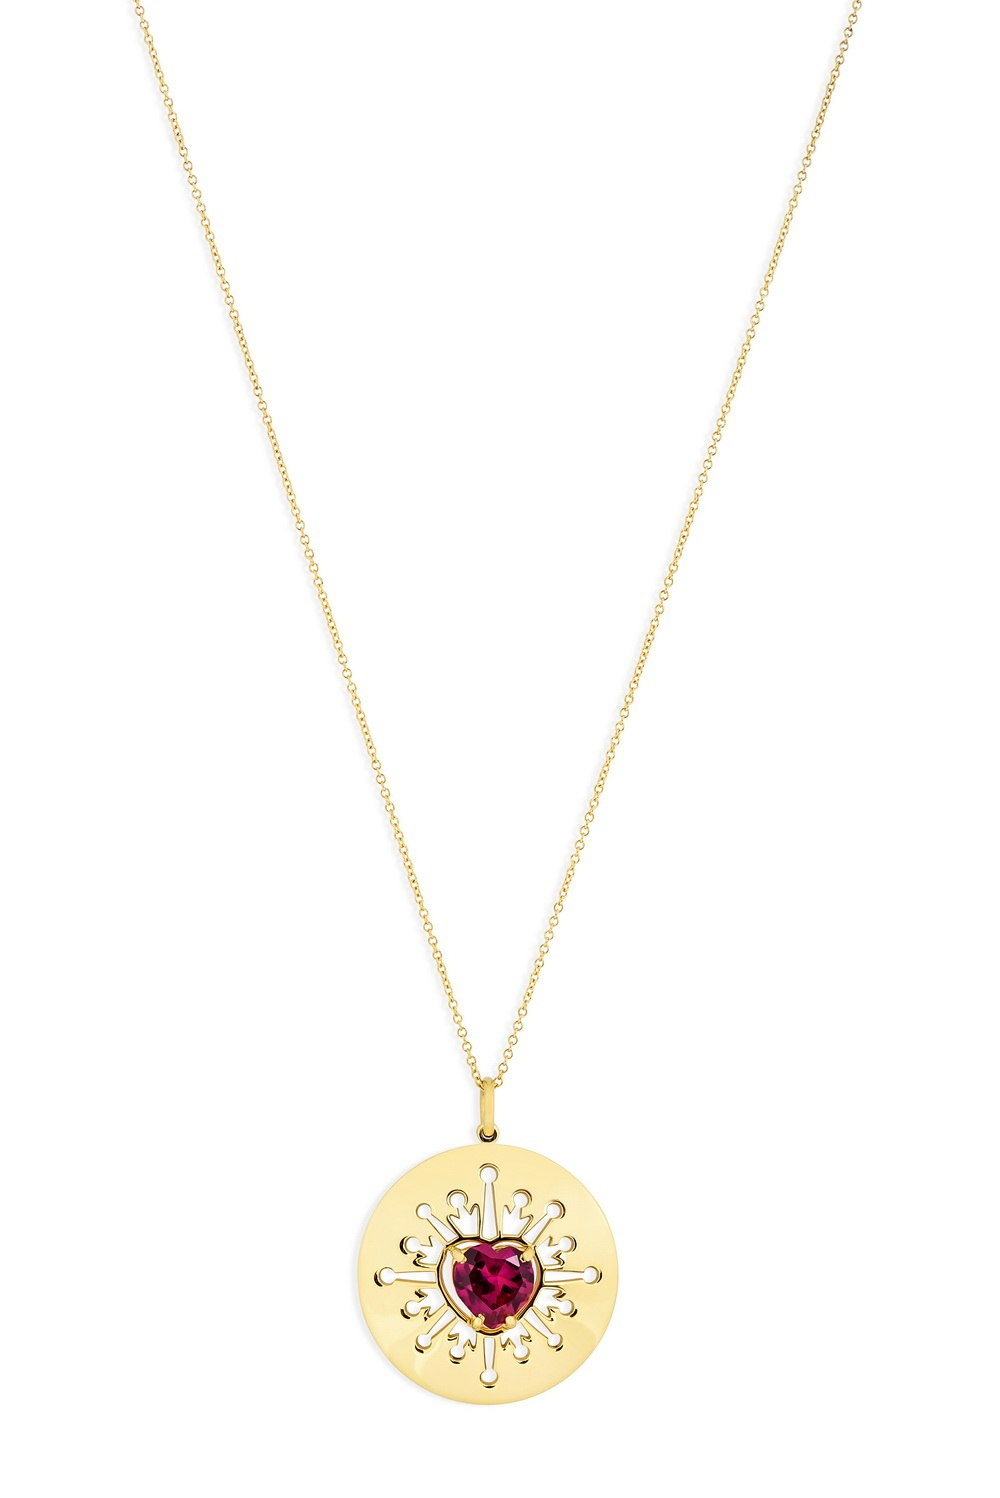 ANASTASIA KESSARIS Red Heart In Round Yellow Pendant Necklace with Ray Cut-Outs KOP180102